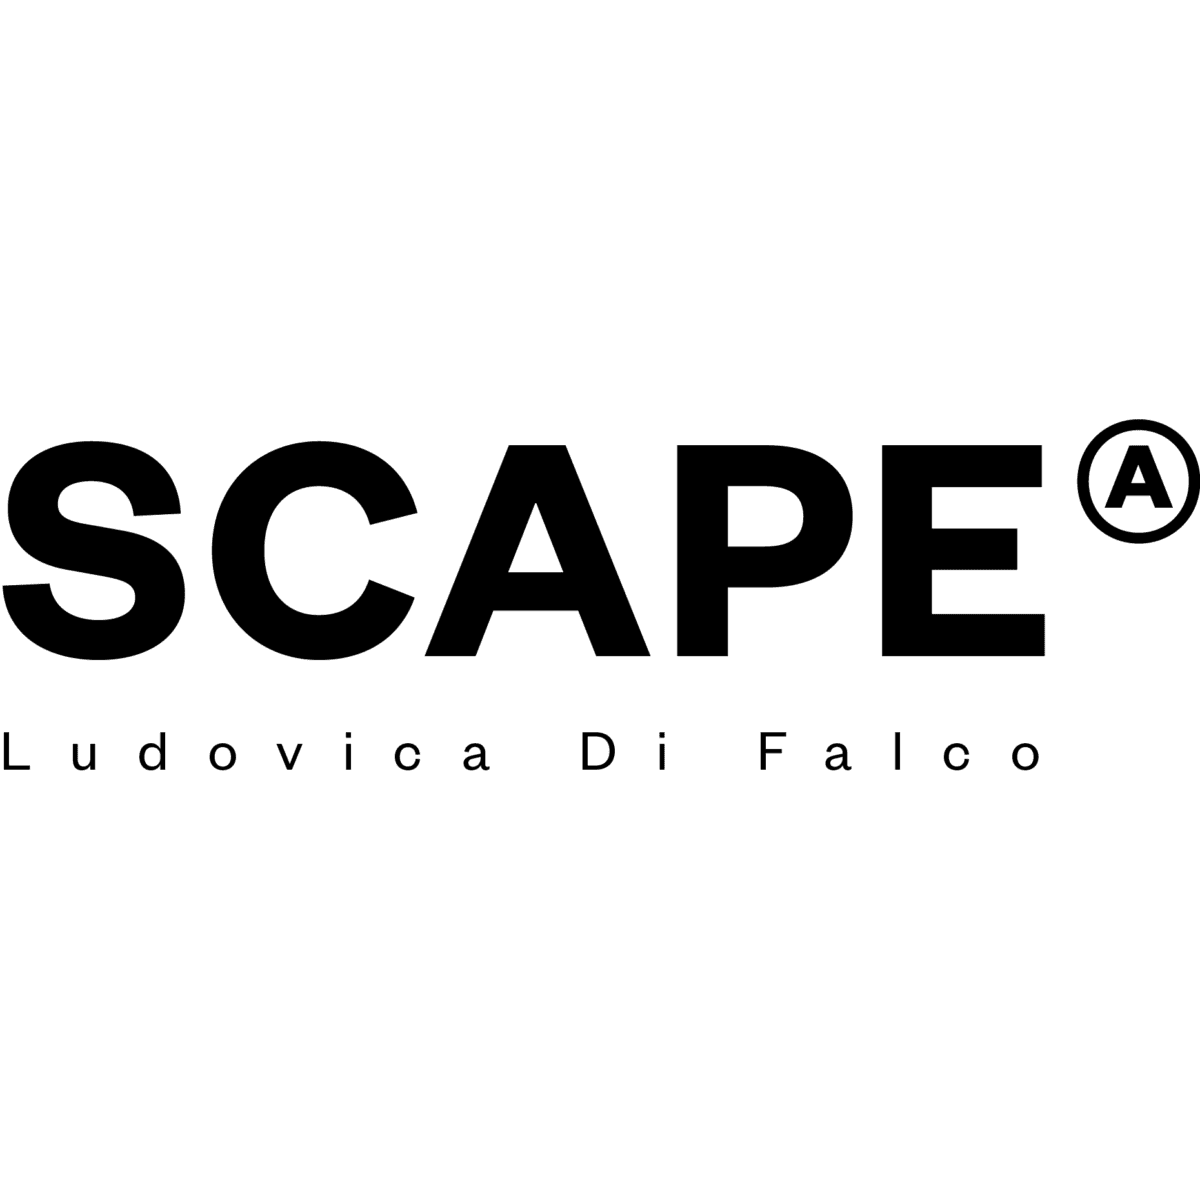 Project architect at SCAPE Architecture in Paris, France